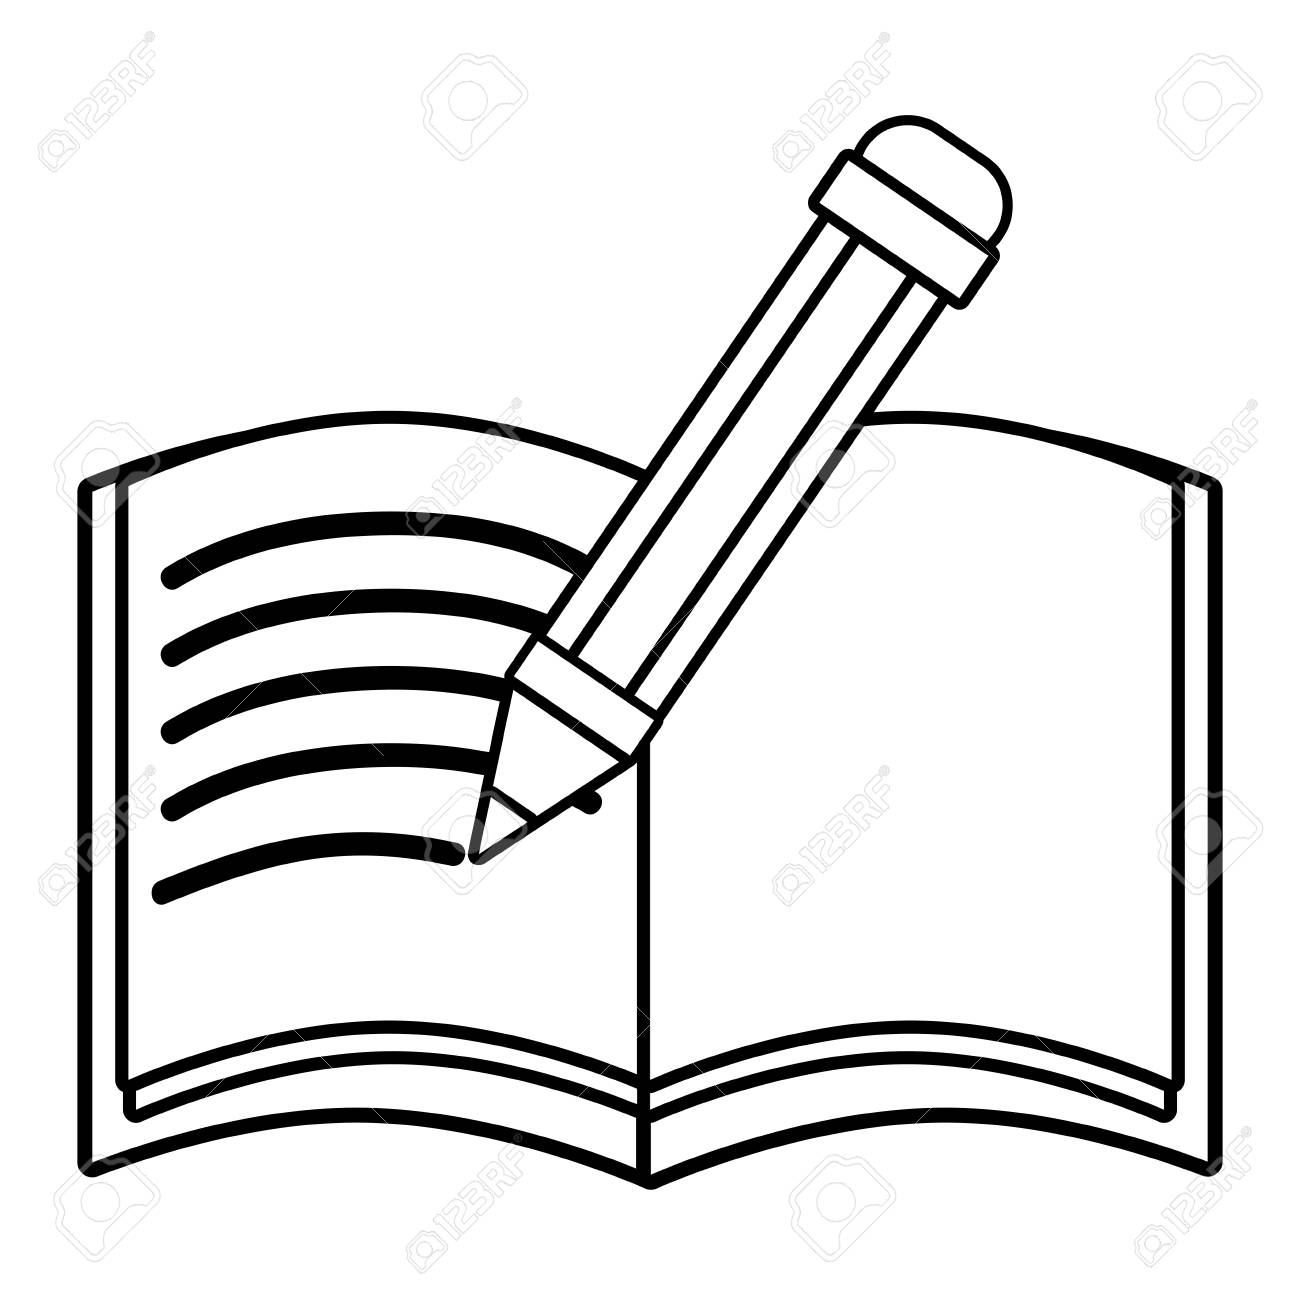 Pencil writing in a notebook vector illustration.